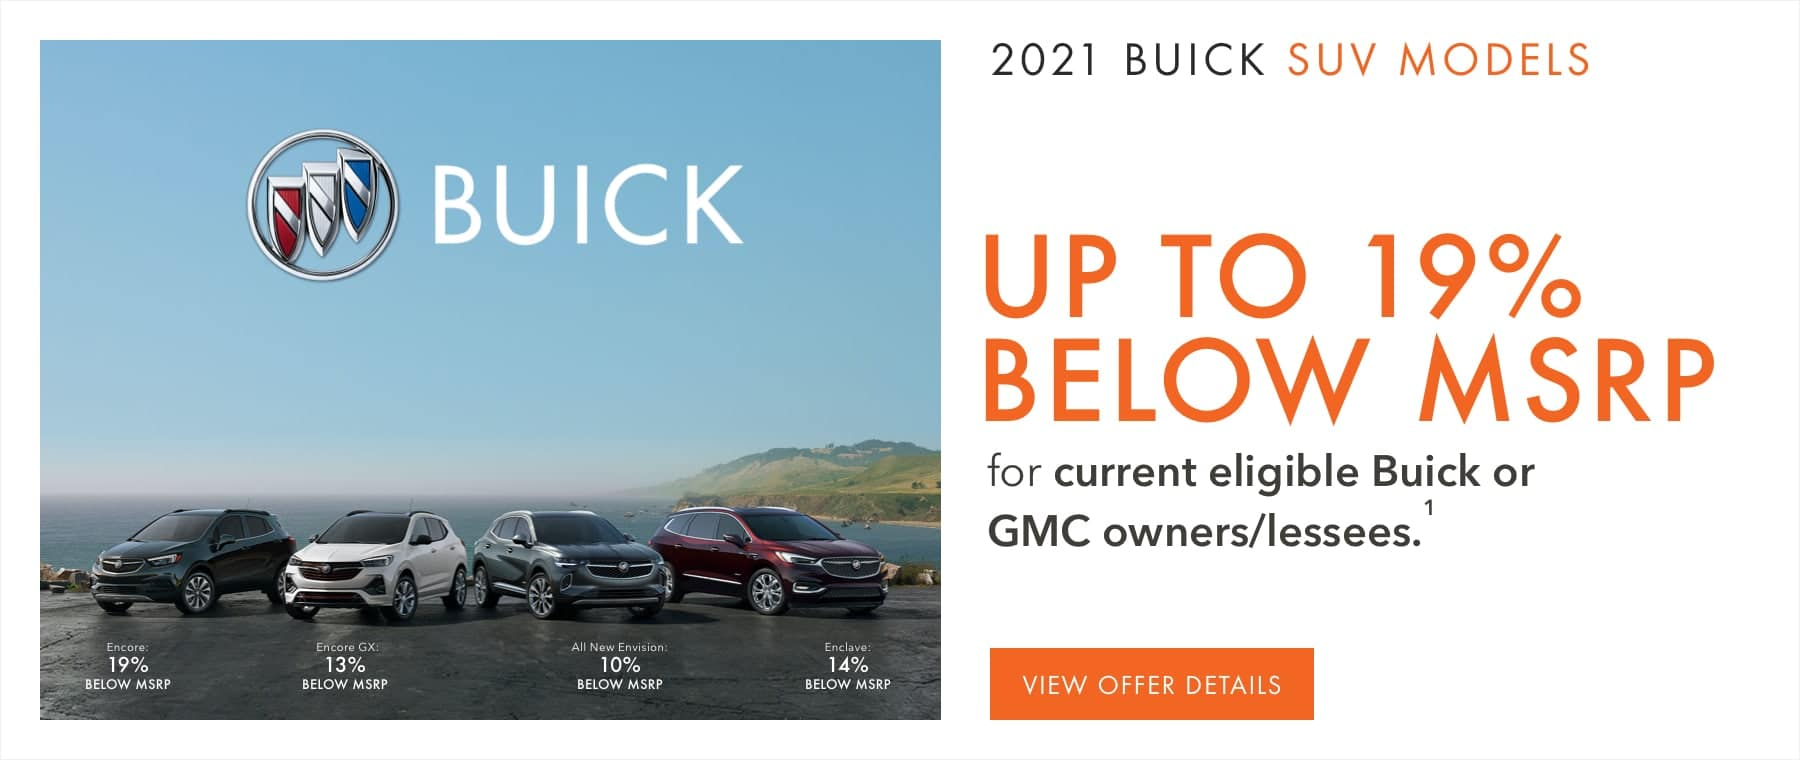 Up to 19% below MSRP for current eligible Buick or GMC owners/lessees.1